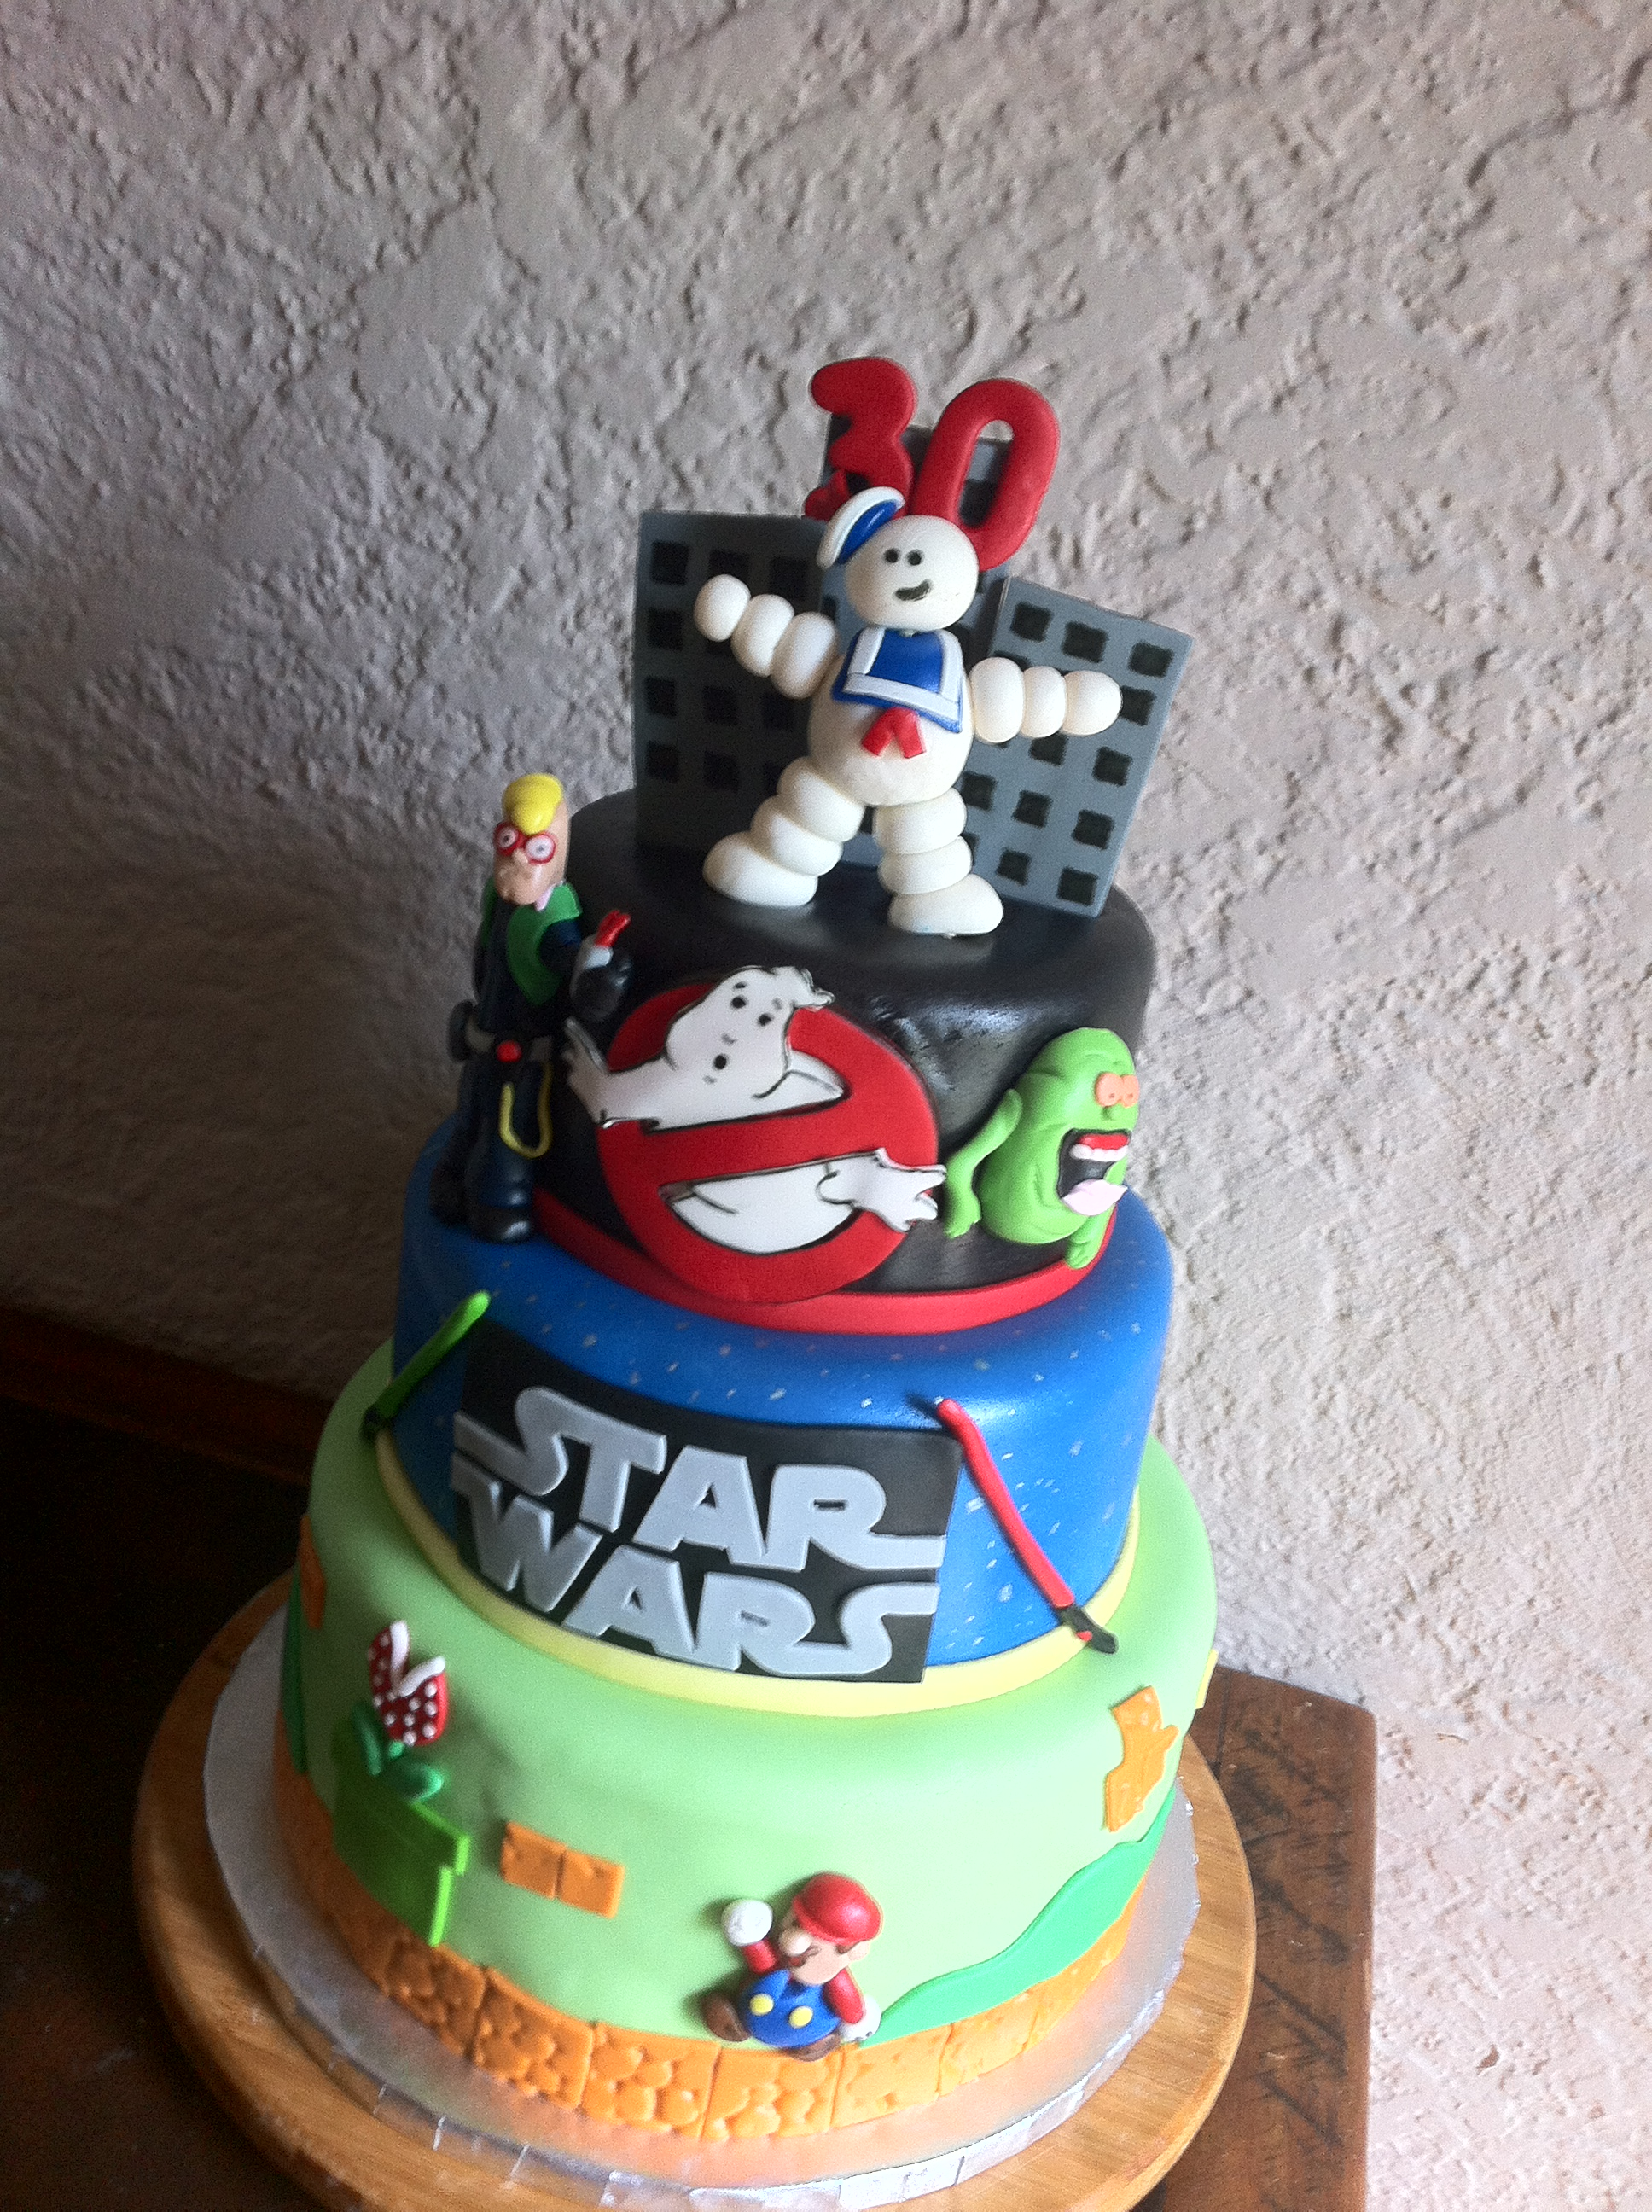 Swell 80S Themed Cake Including Ghostbusters Star Wars Super Mario Funny Birthday Cards Online Barepcheapnameinfo